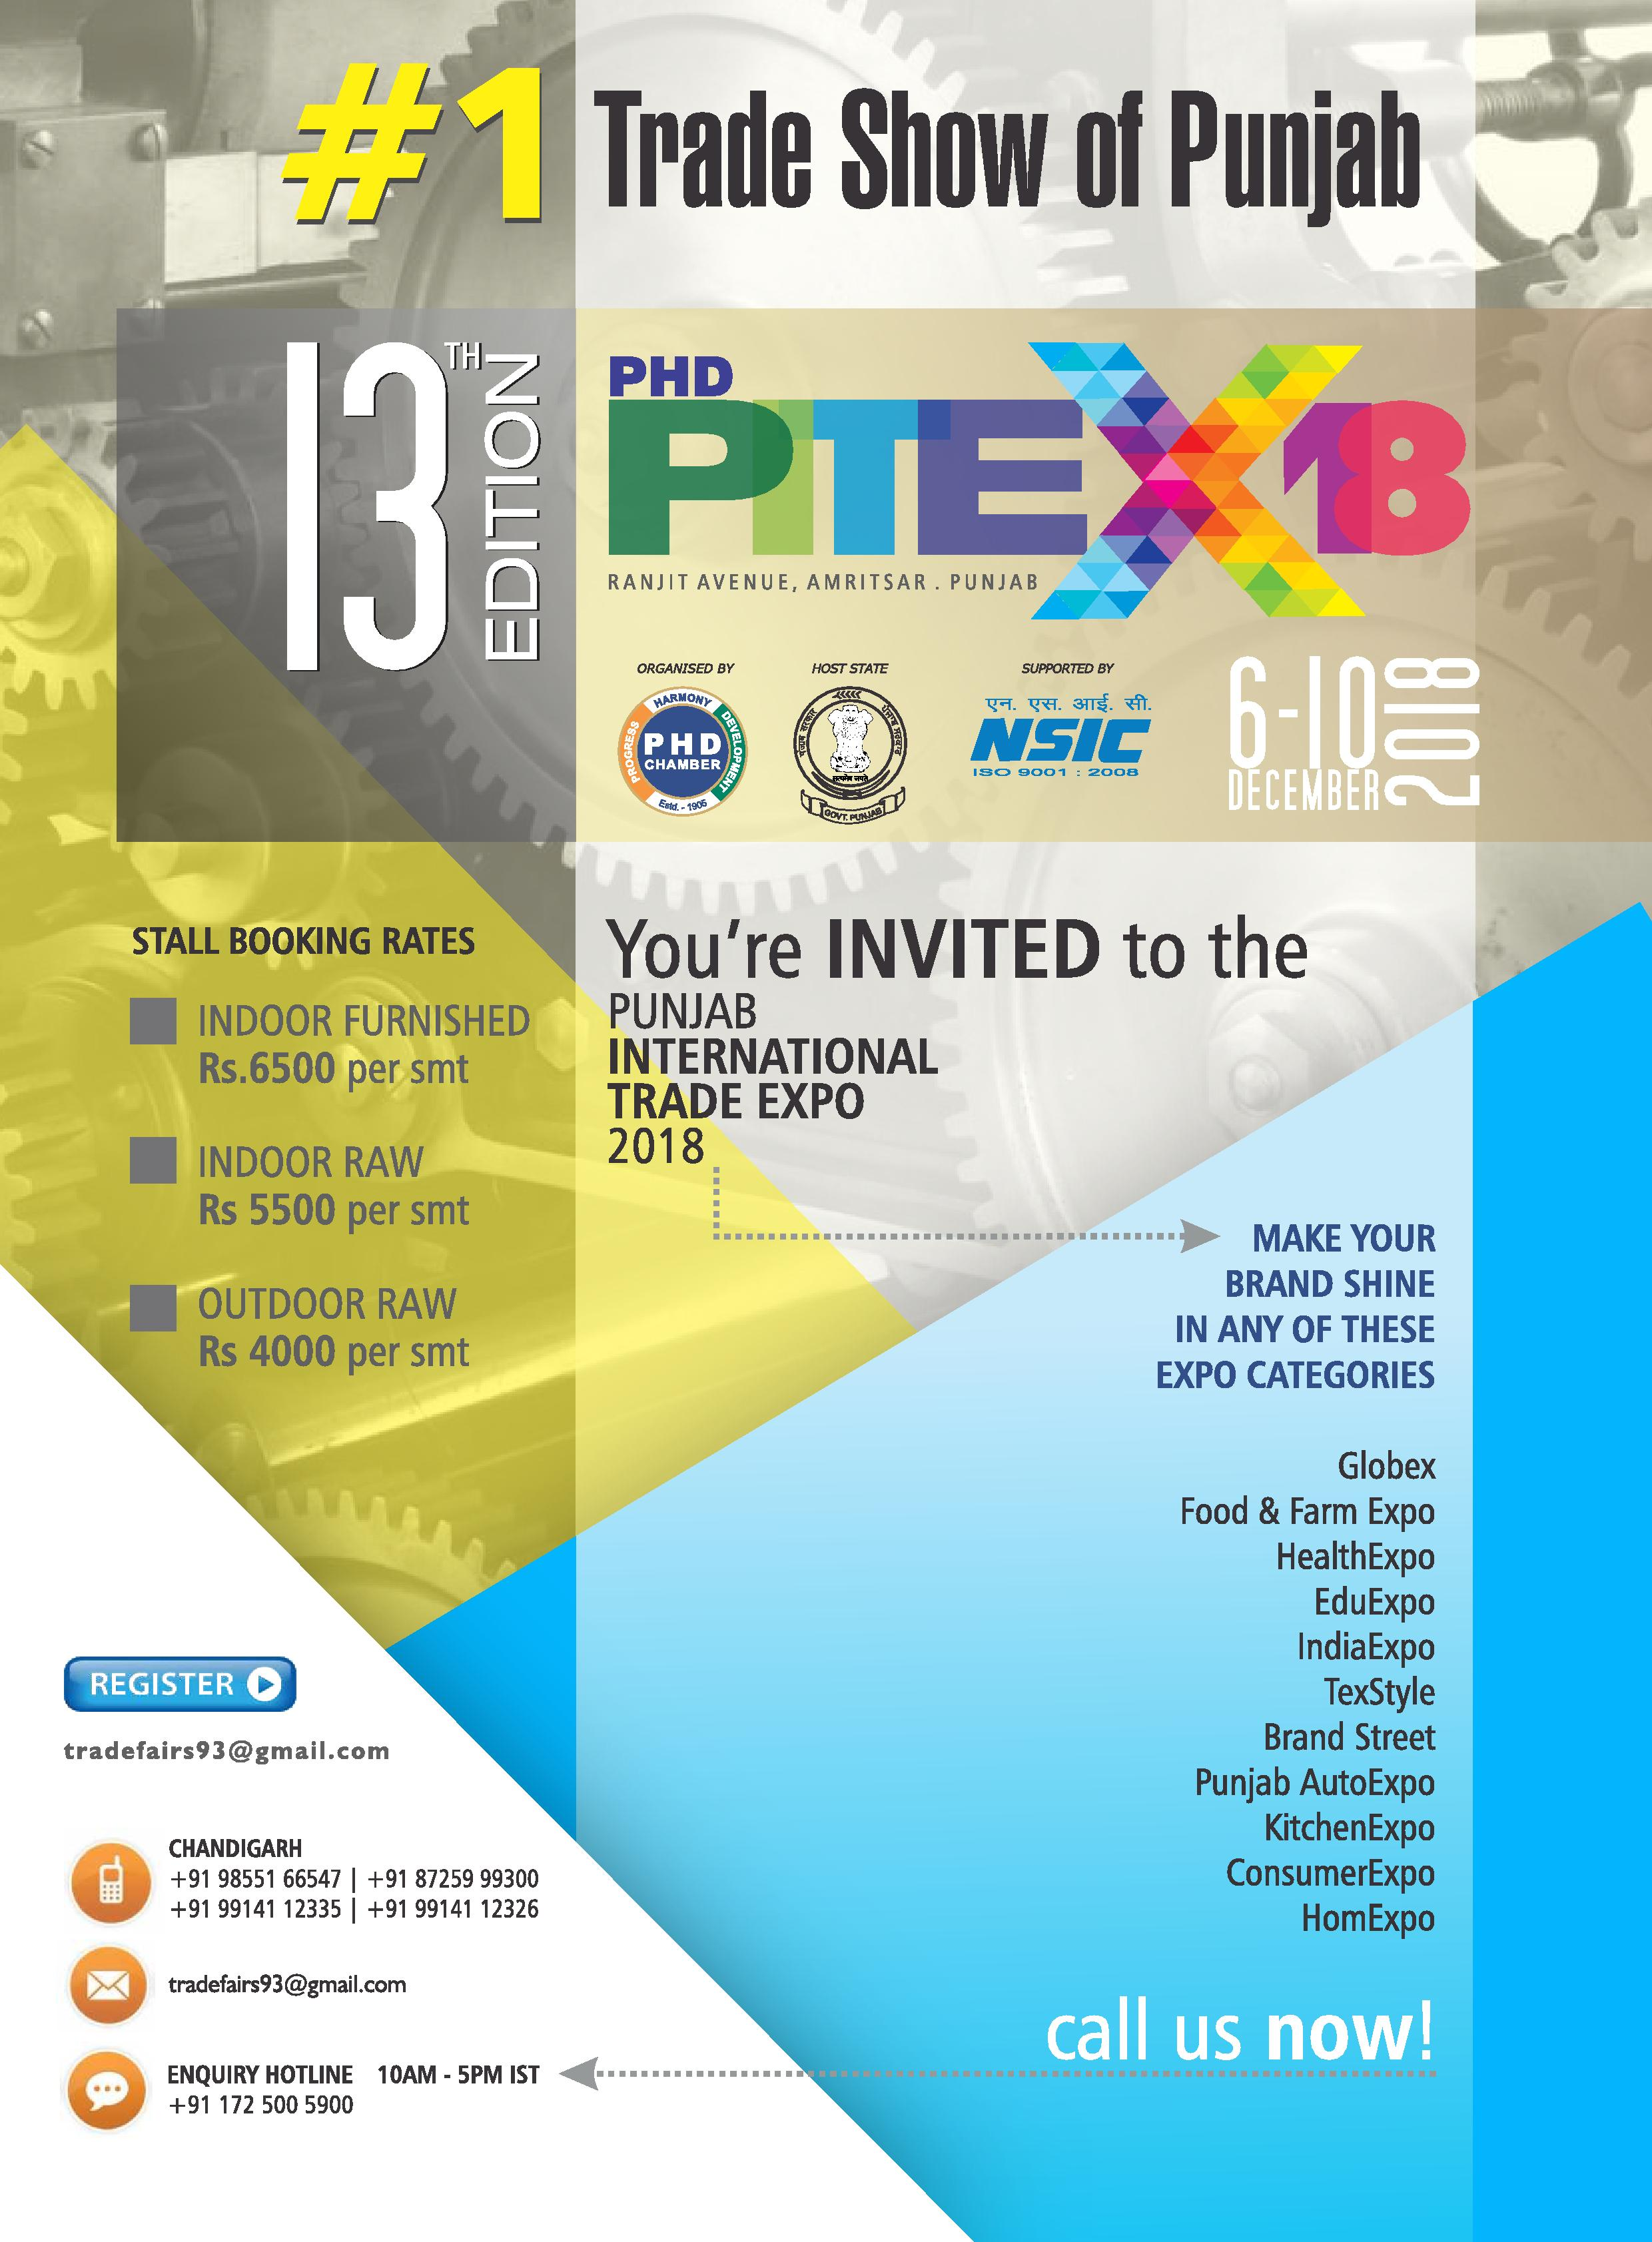 Punjab International Trade Expo (PITEX) 2018